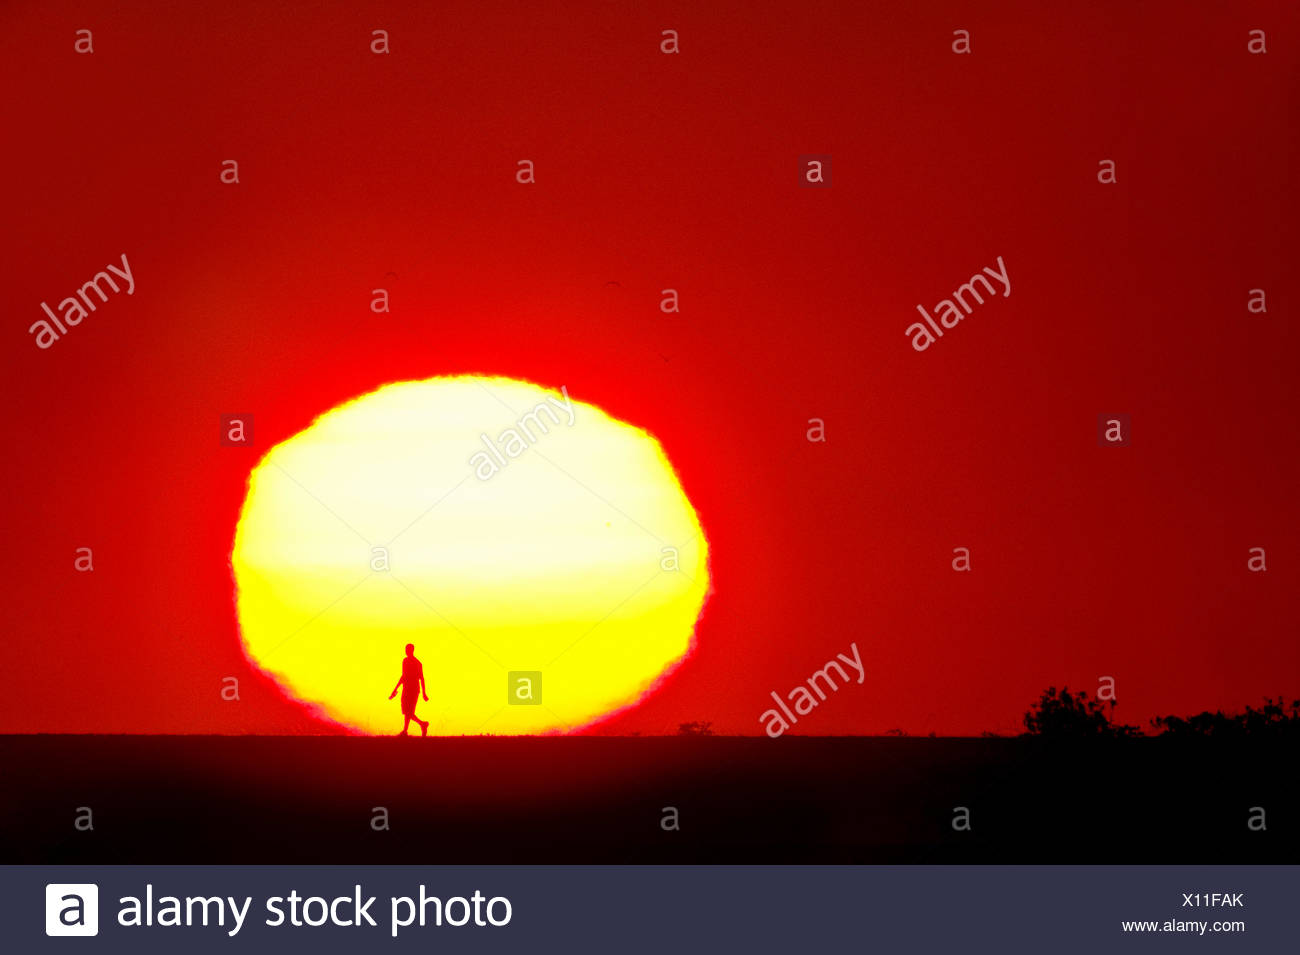 Man walking at sunset. Iona Island Regional park, Richmond, British Columbia, Canada. - Stock Image